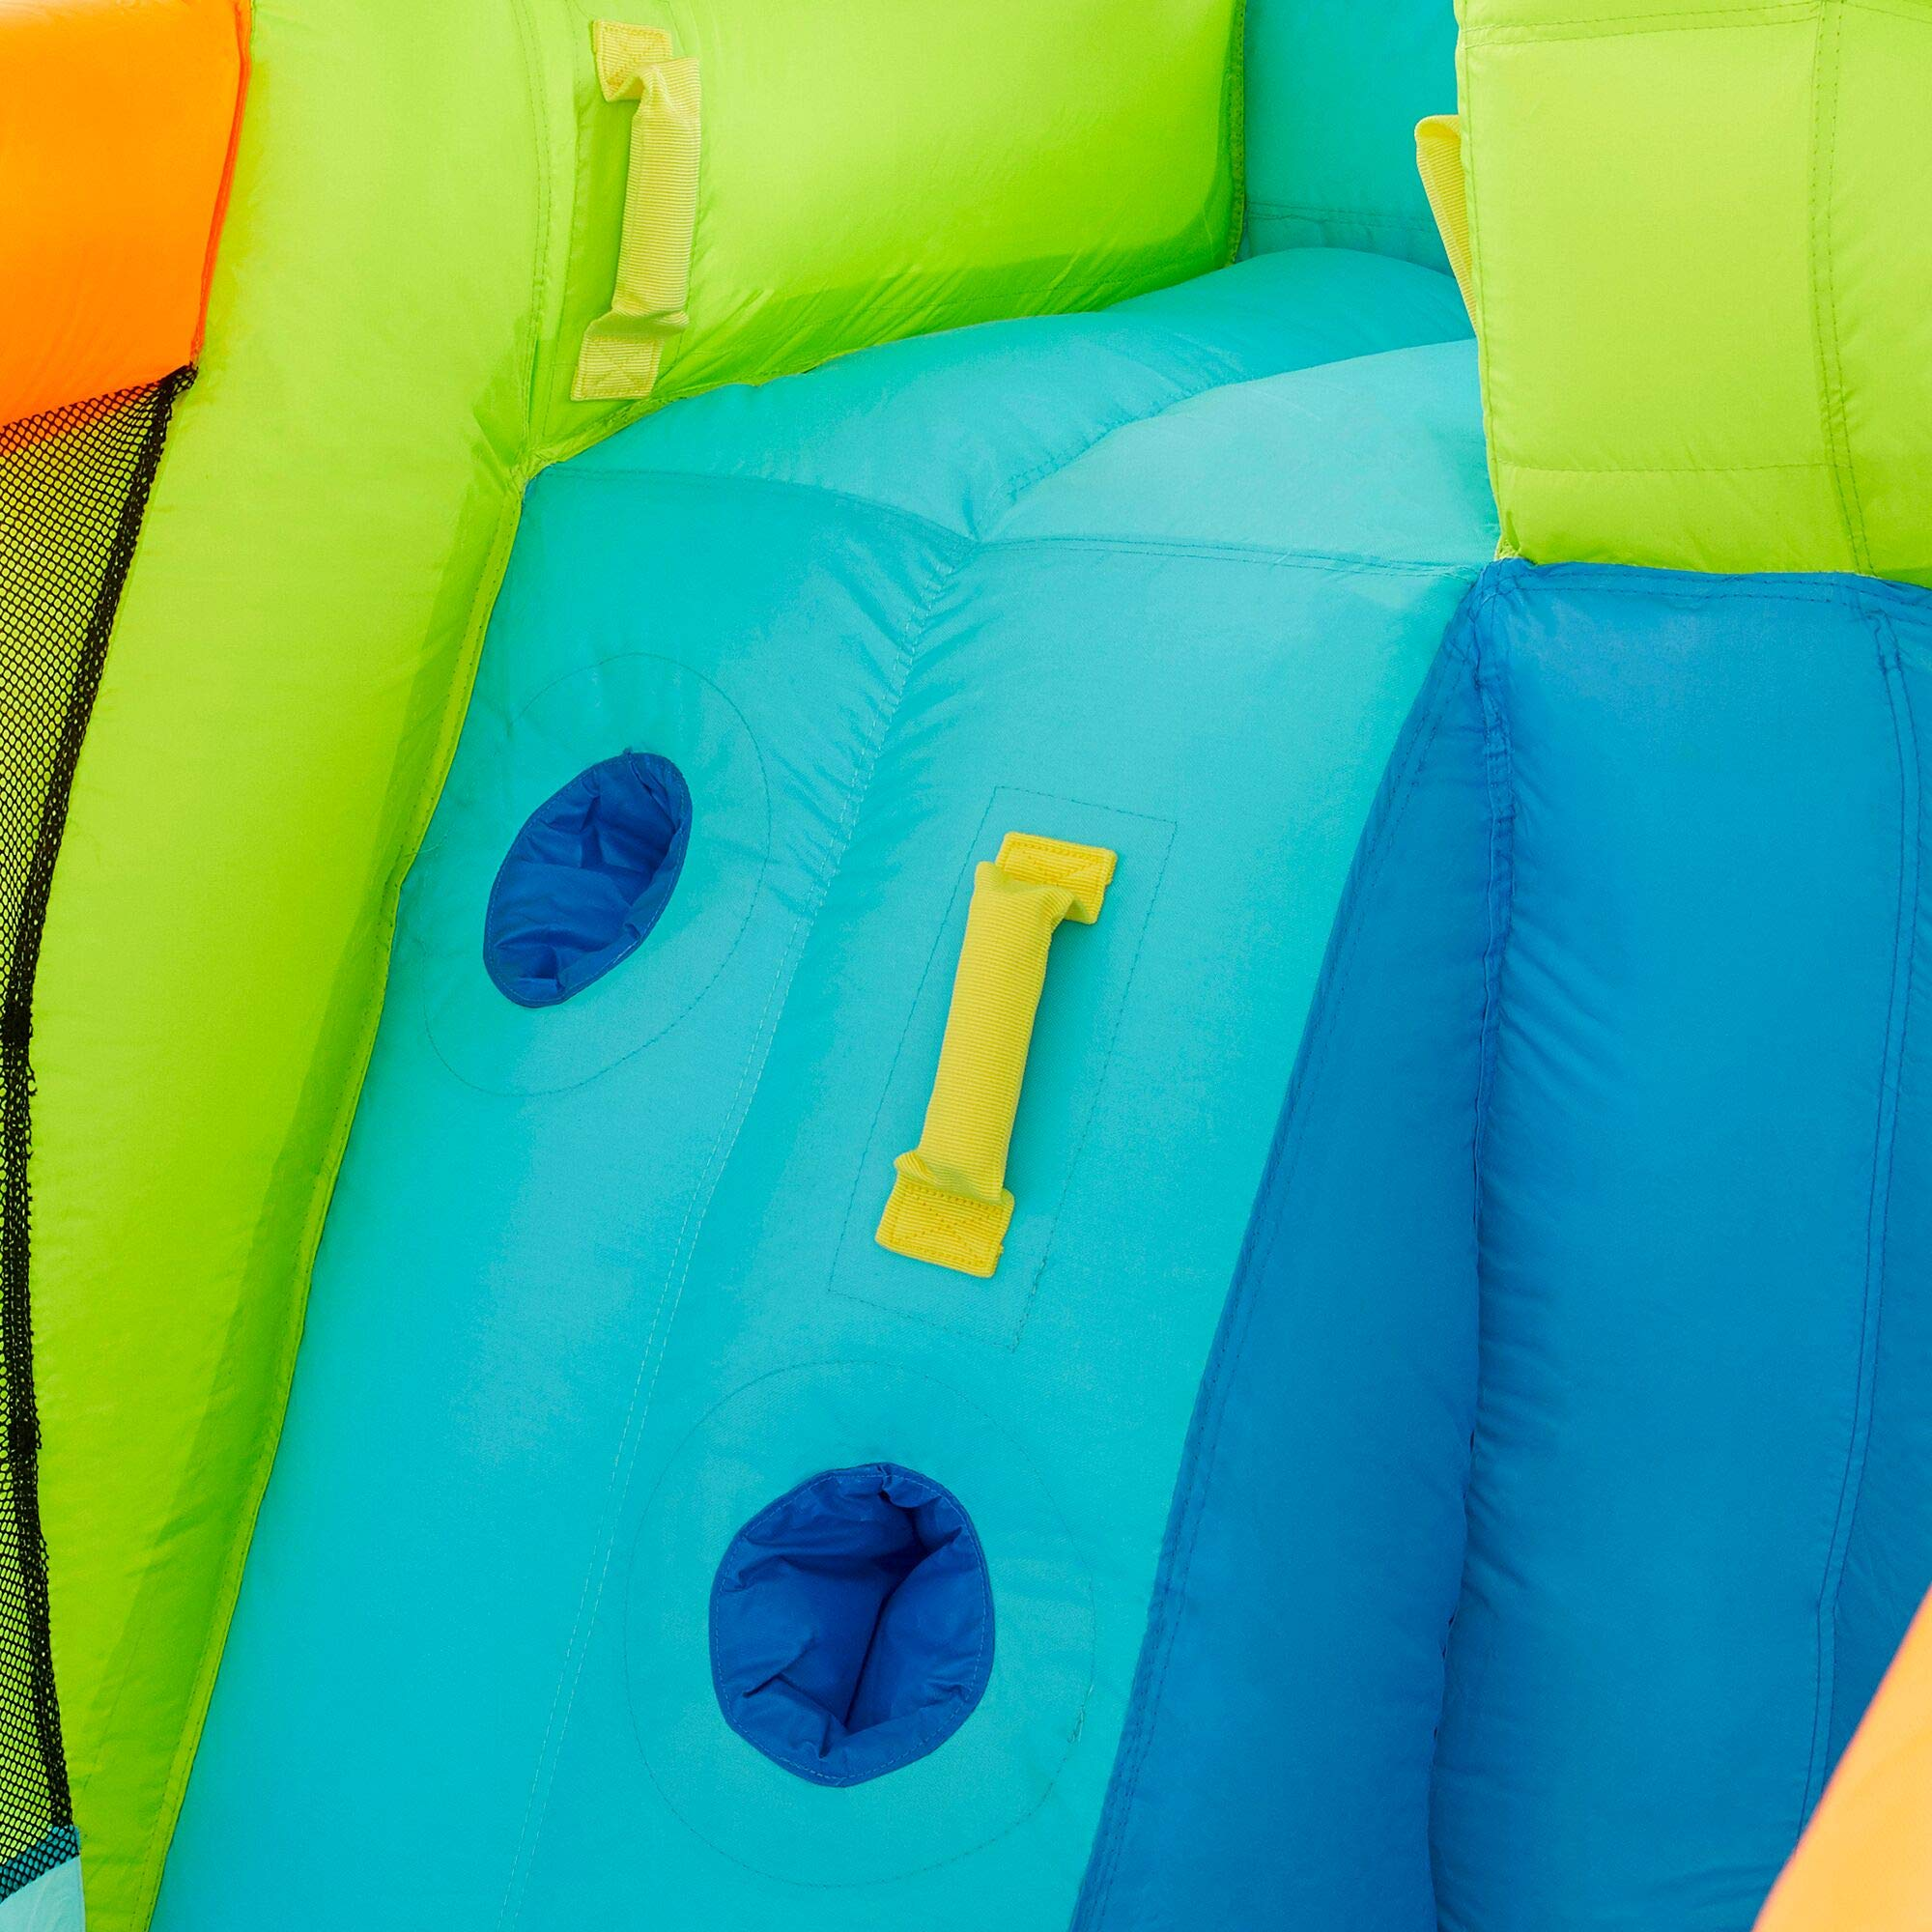 Riptide Triple Fun Inflatable PVC Water Park with 3 Slides & Obstacle Course by Riptide (Image #8)